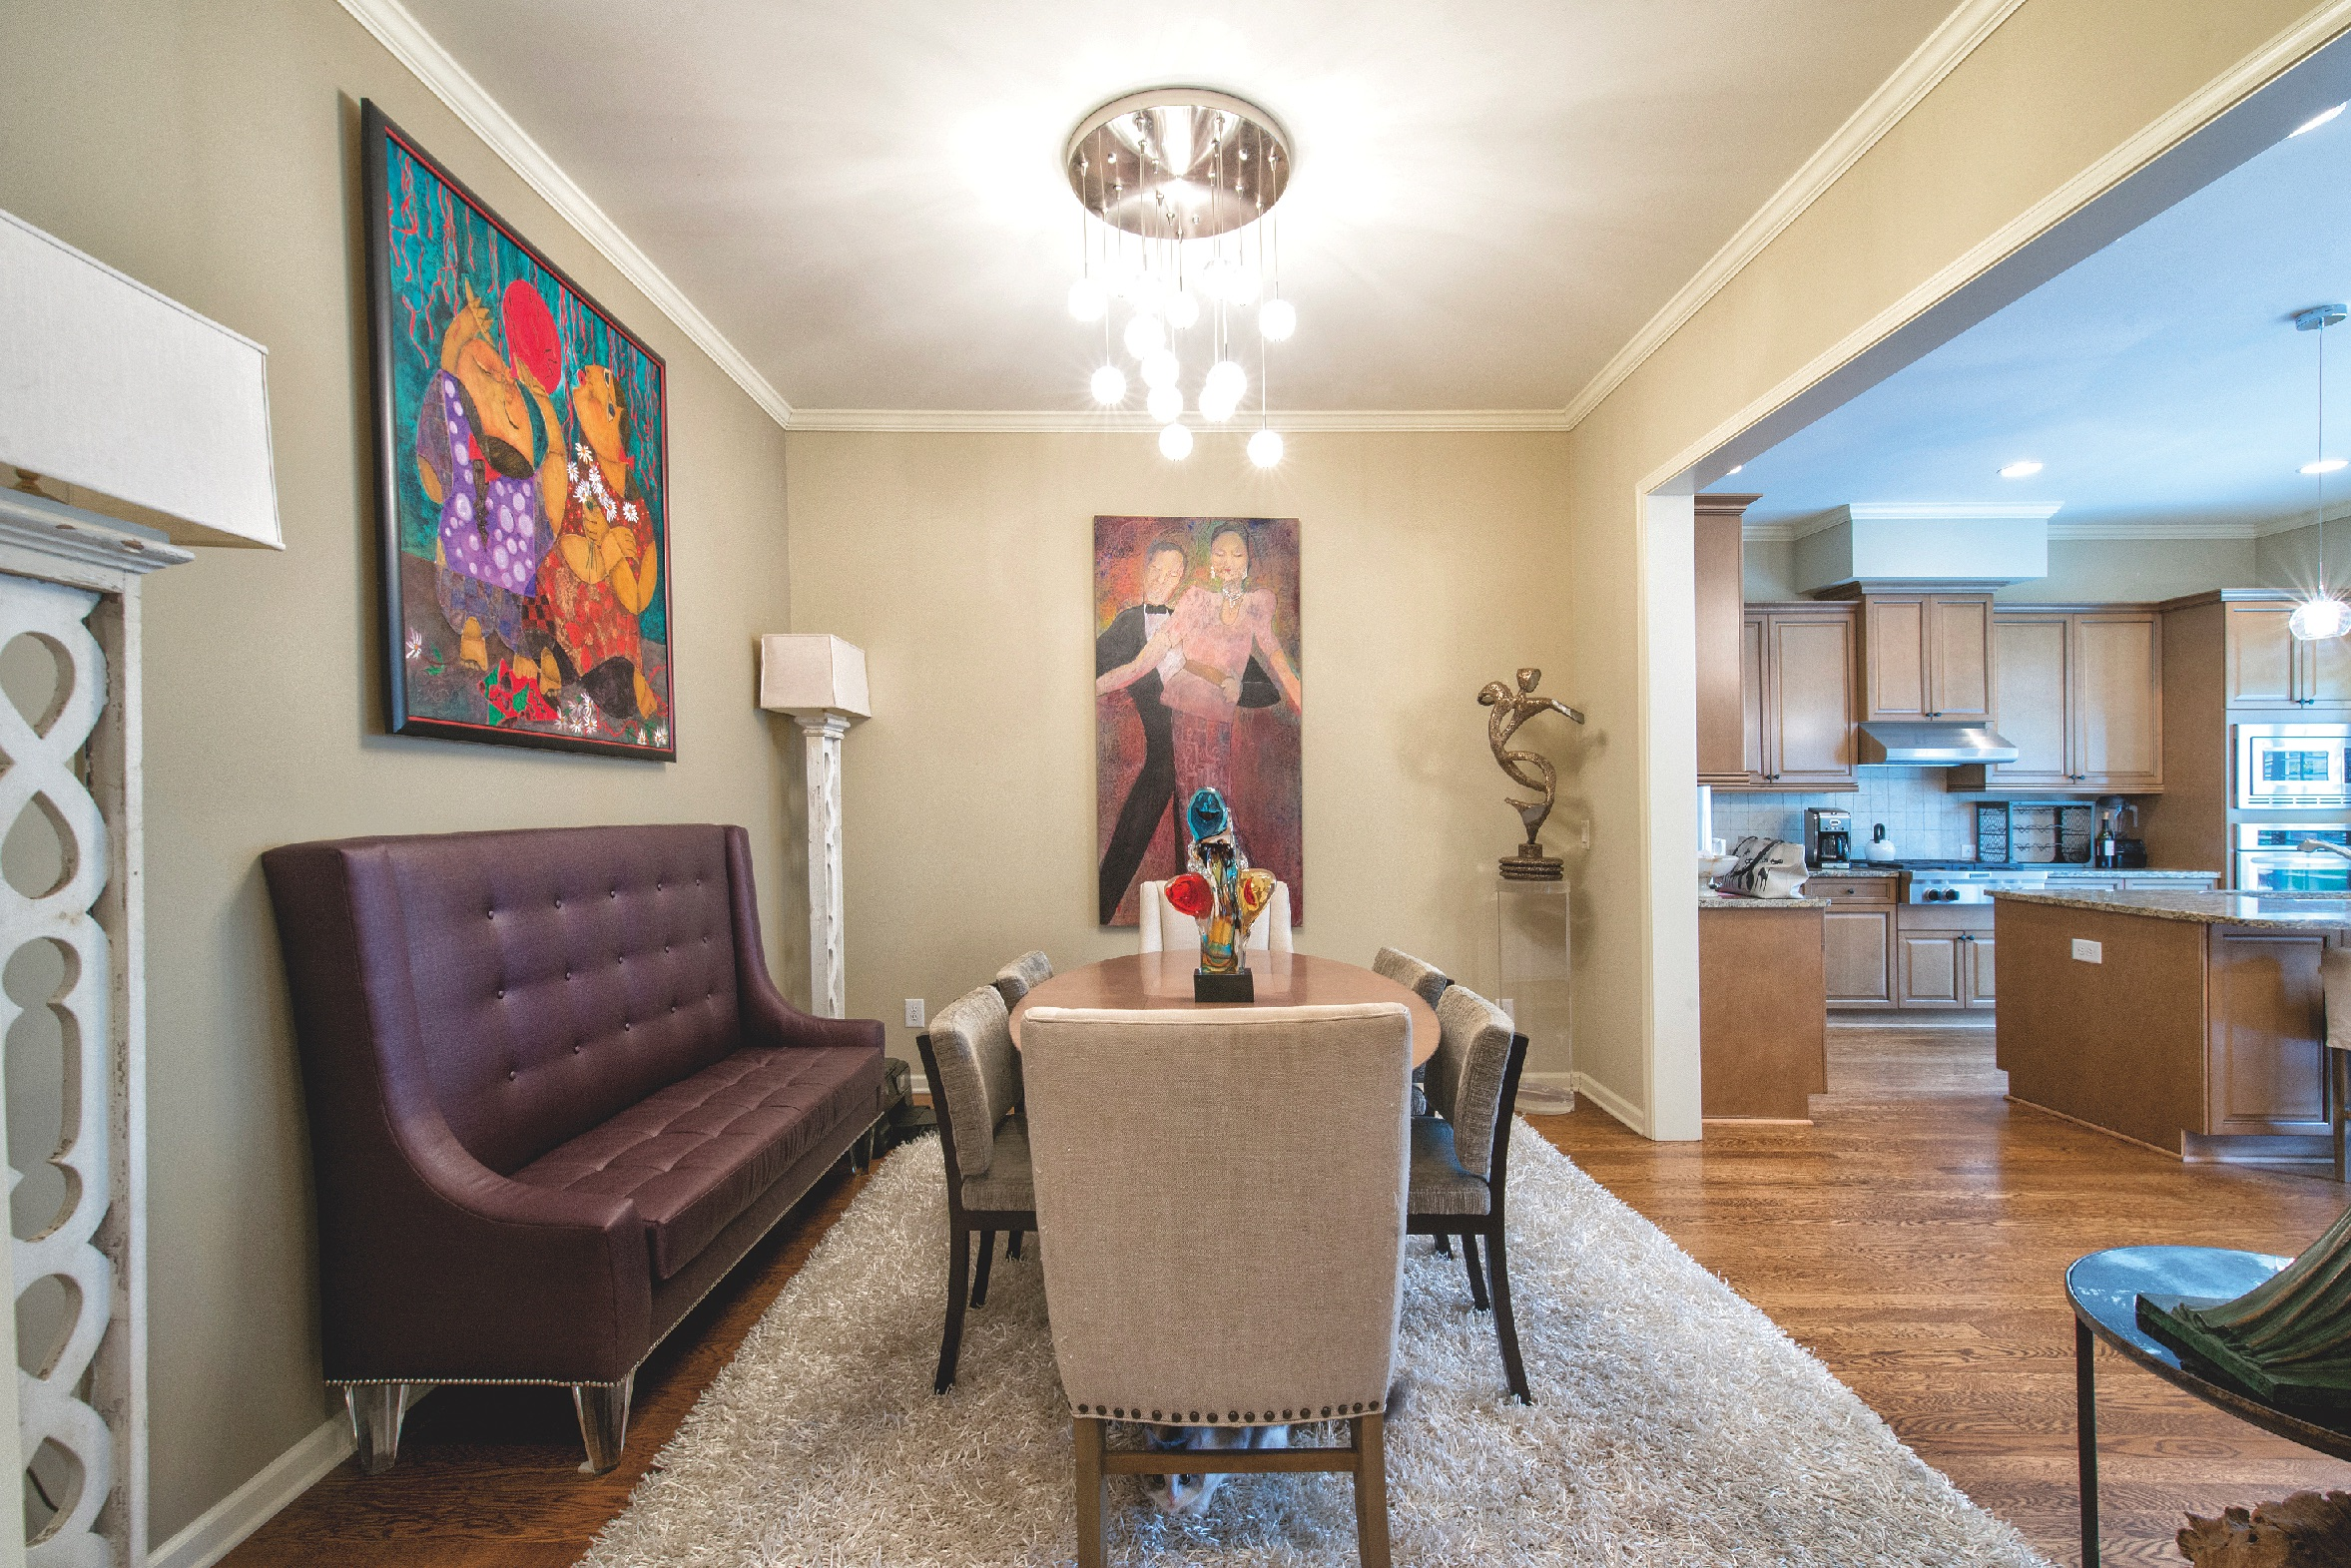 Petite Banquette Design Chai Style Homes Colorful Cubist Is Self Taught Atlanta Jewish